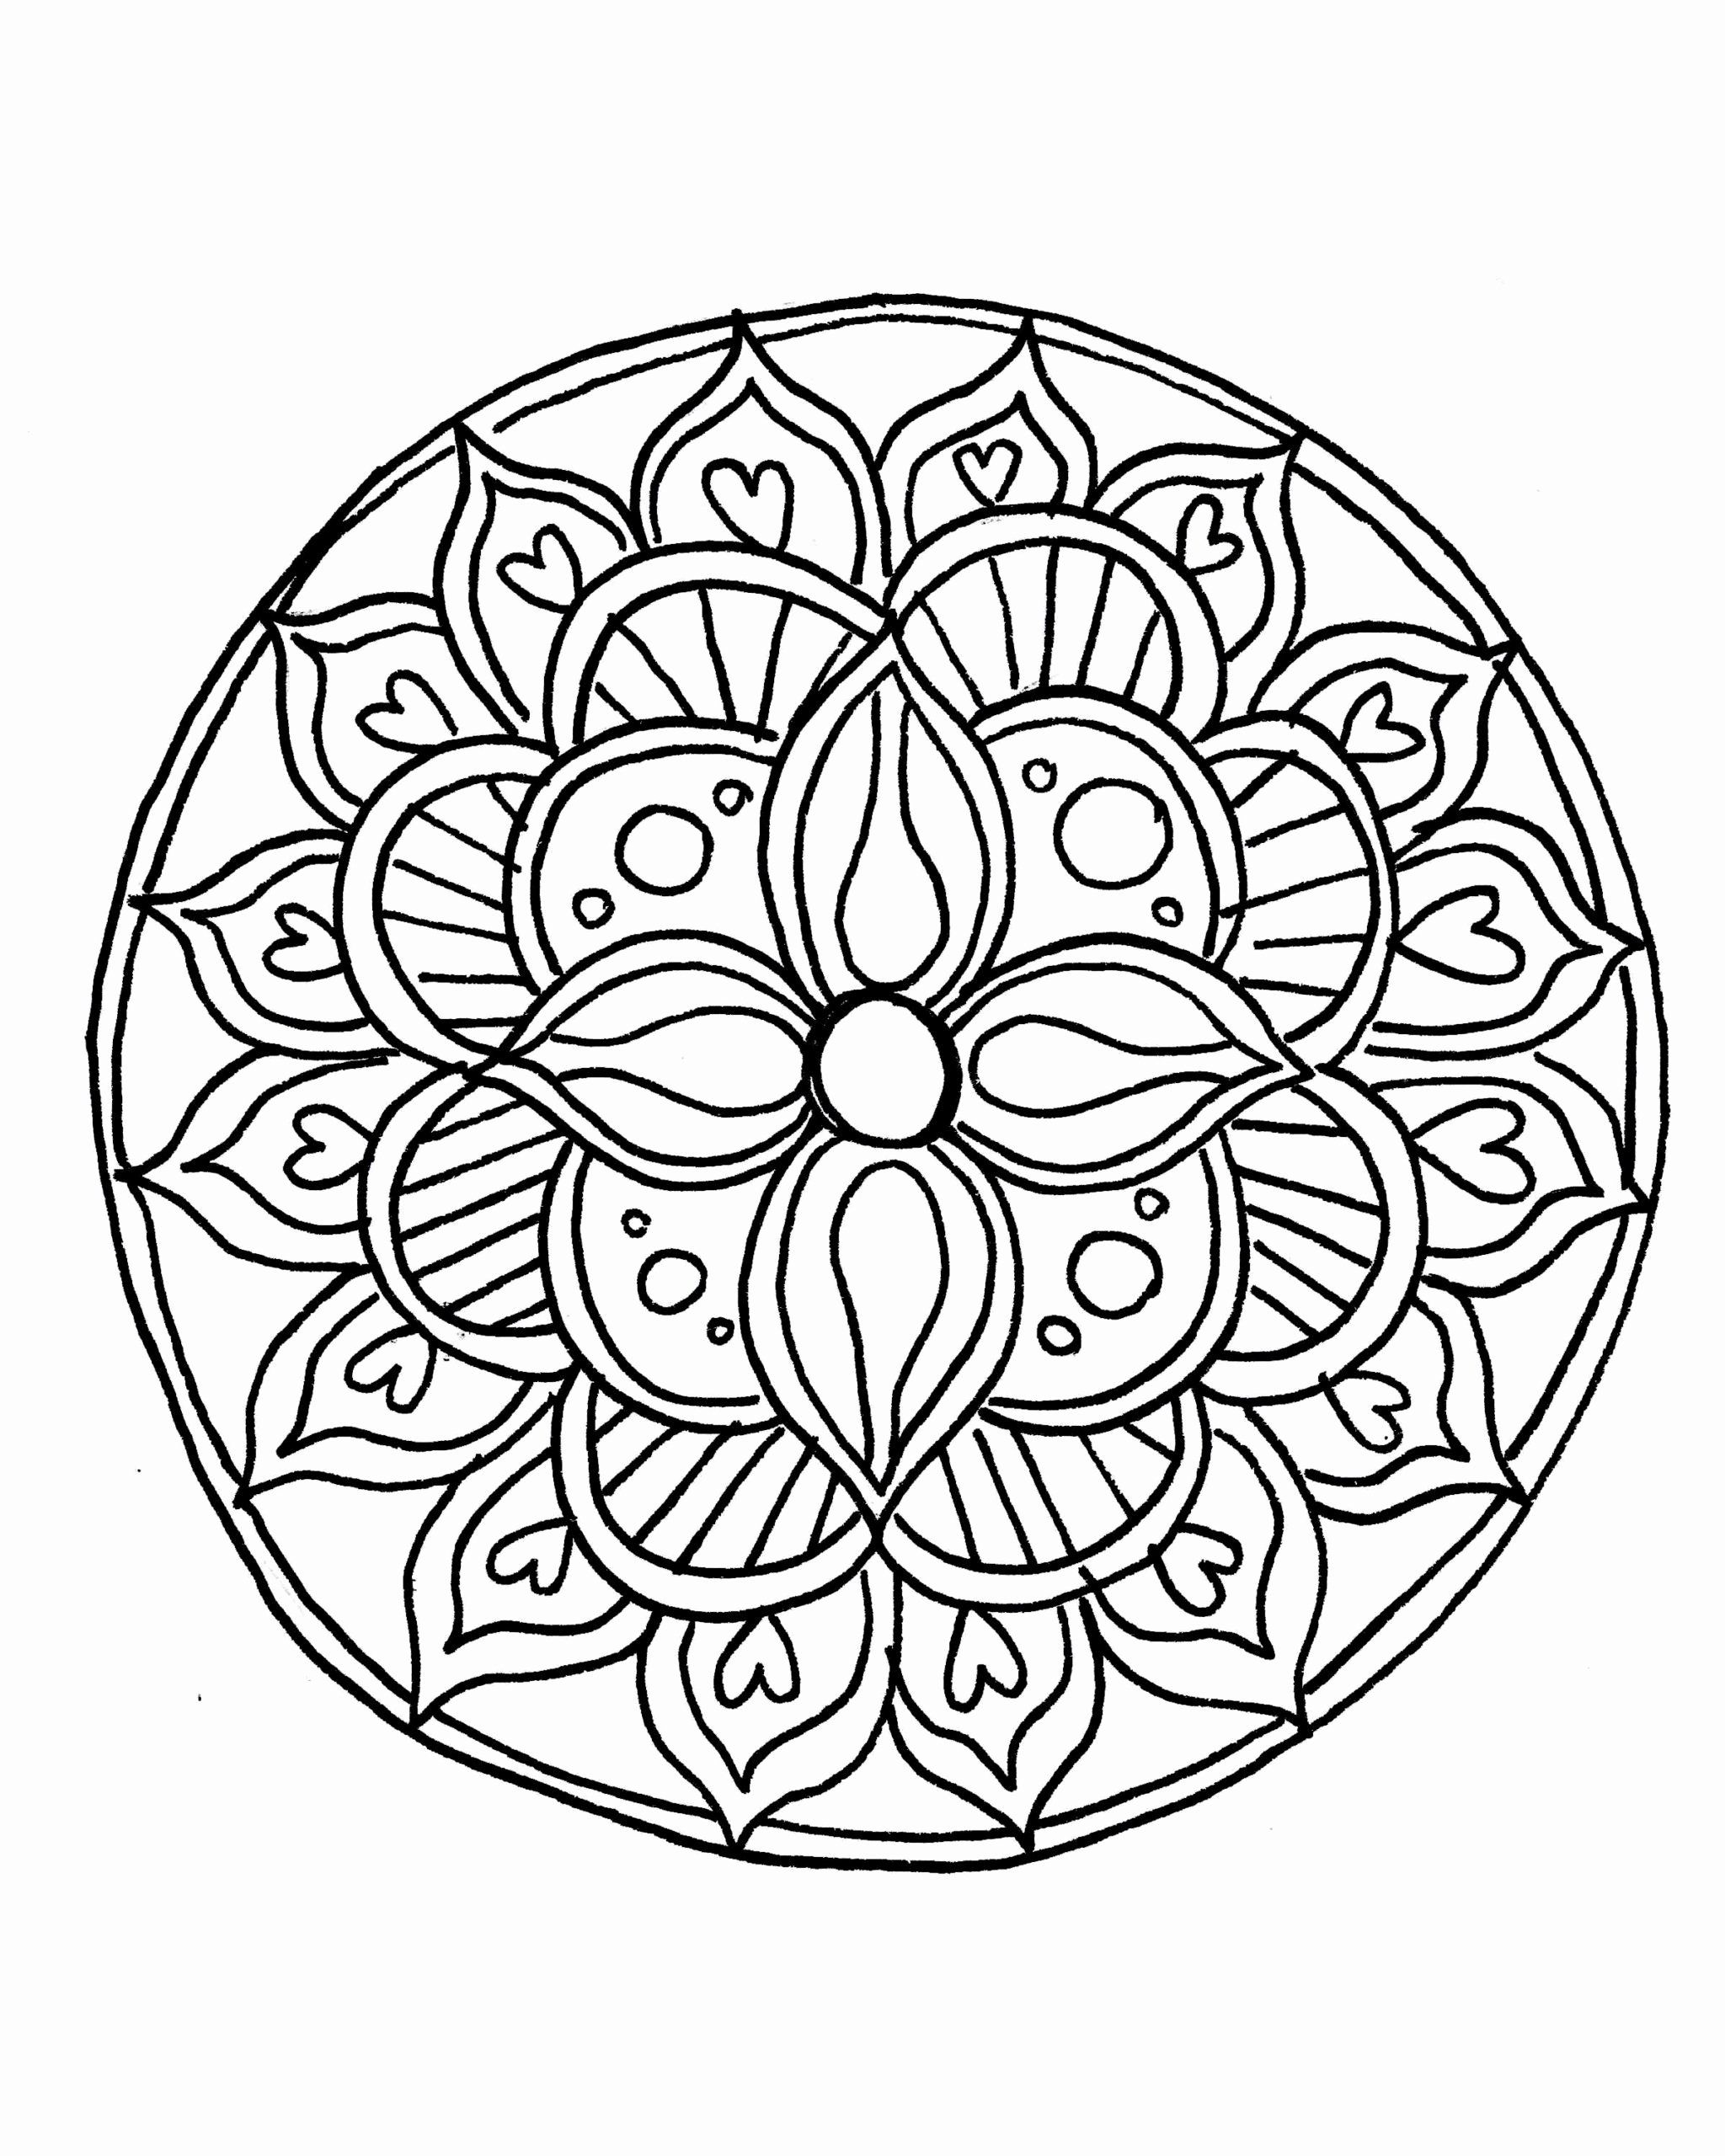 Easy Coloring Book For Adults Lovely Coloring Pages Coloring Book To Draw Your Owna Free Easy In 2020 Mandala Coloring Pages Mandala Coloring Turtle Coloring Pages